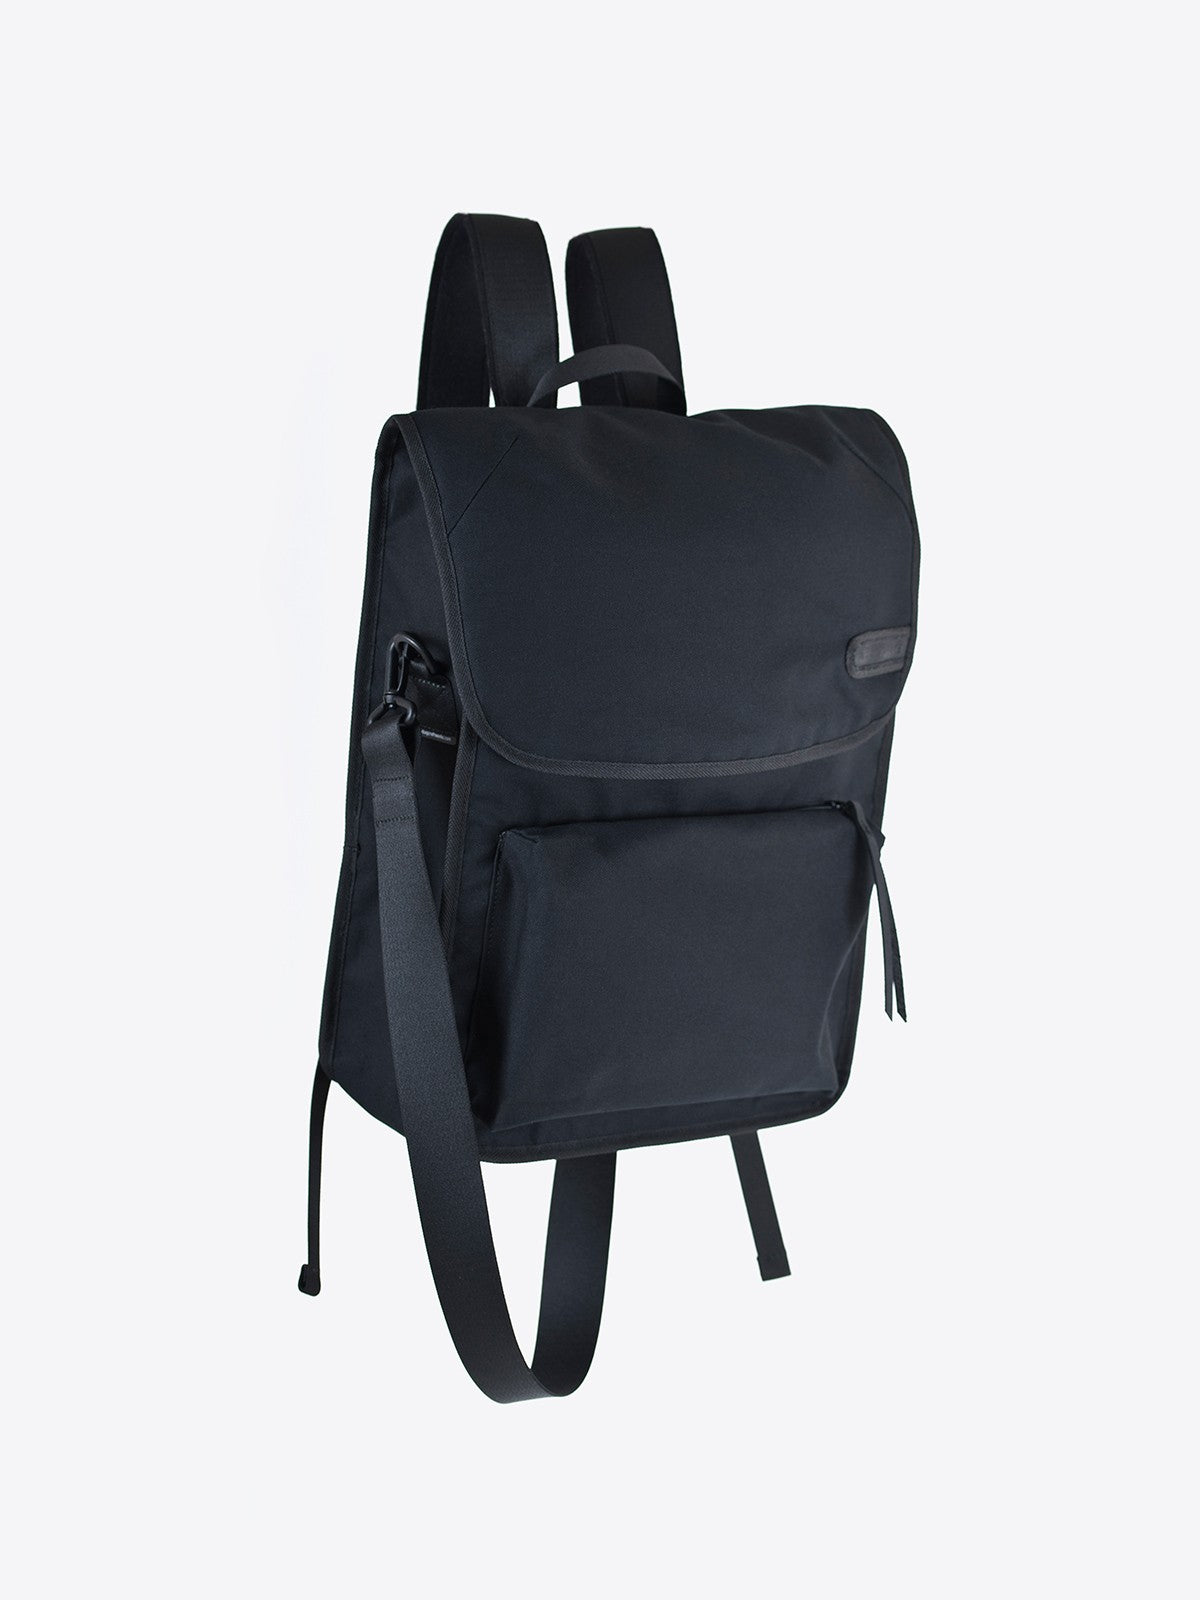 airbag craftworks gunnar backpack black